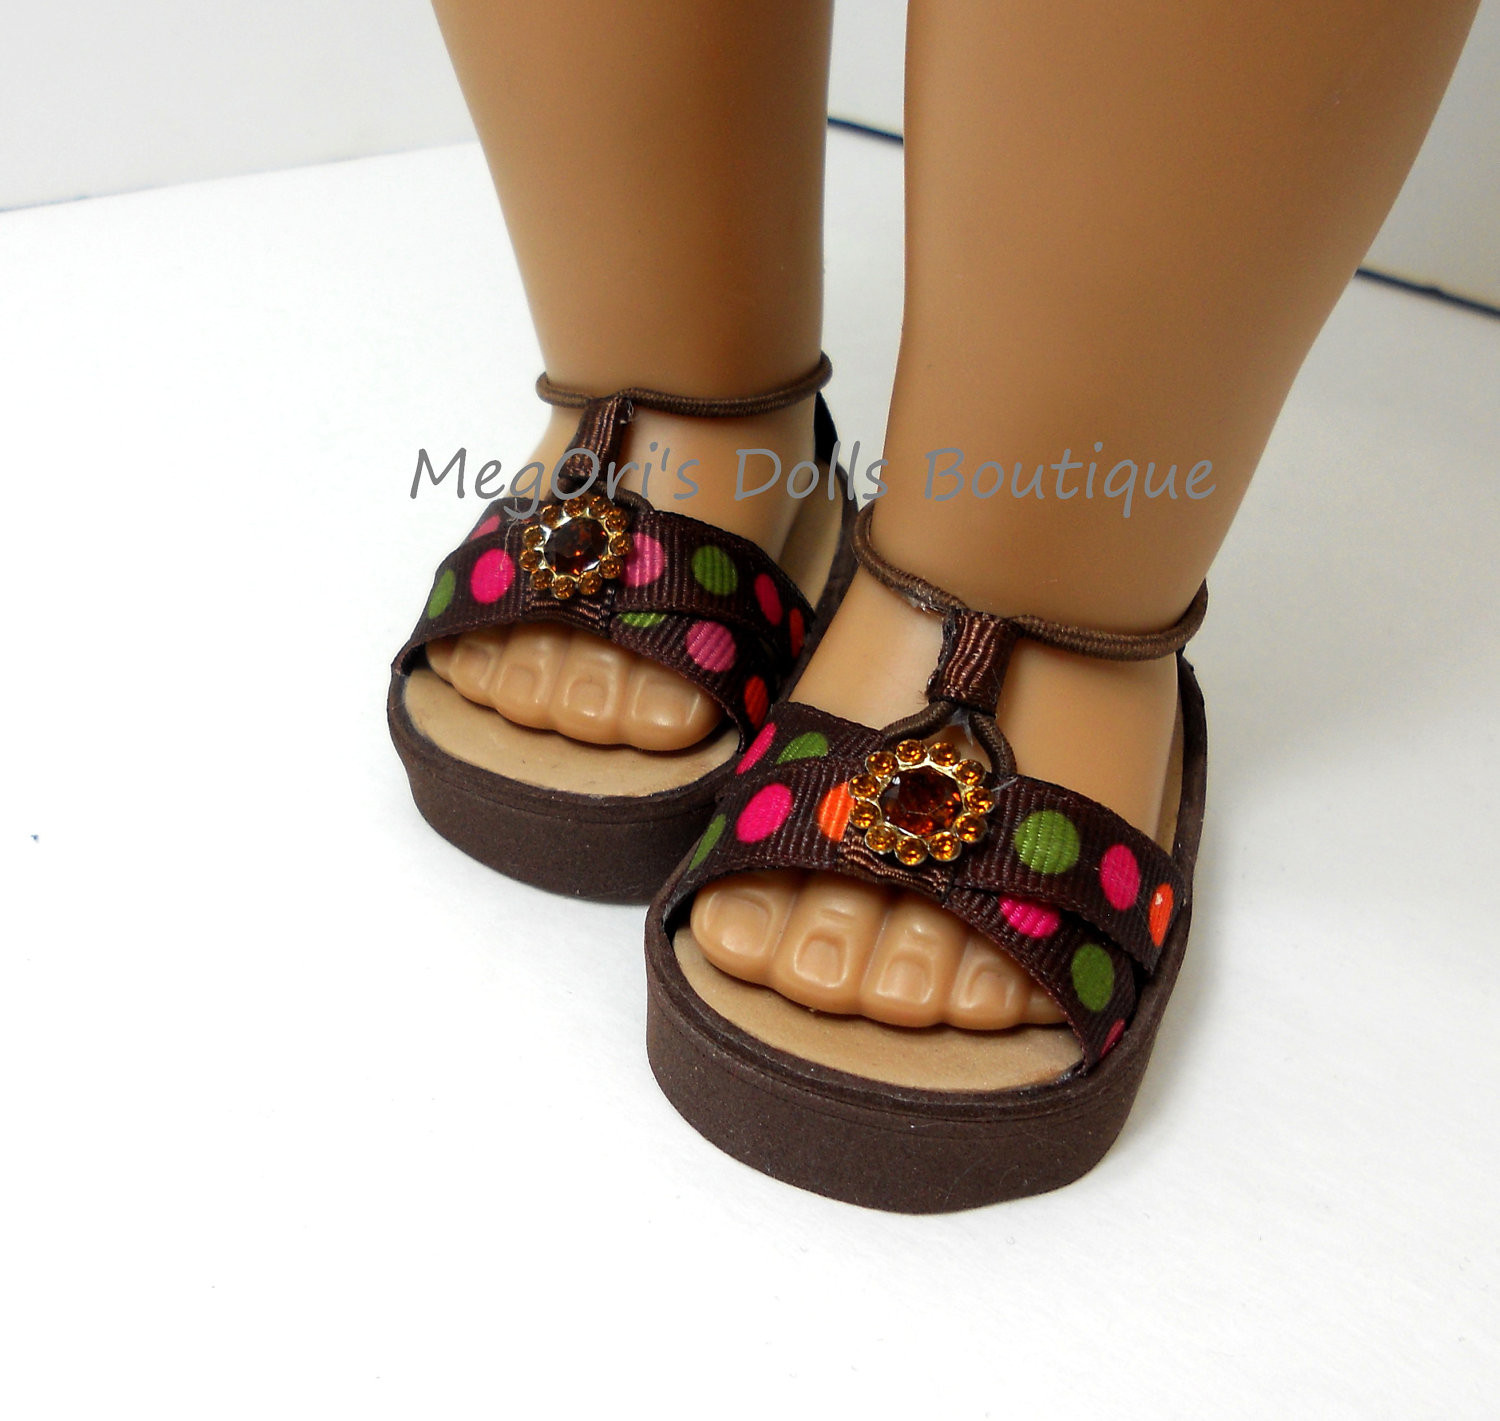 American Girl Doll Shoes Best Of American Girl Dolls Sandals Shoes Dahlias Brown Green Pink Of Attractive 48 Models American Girl Doll Shoes